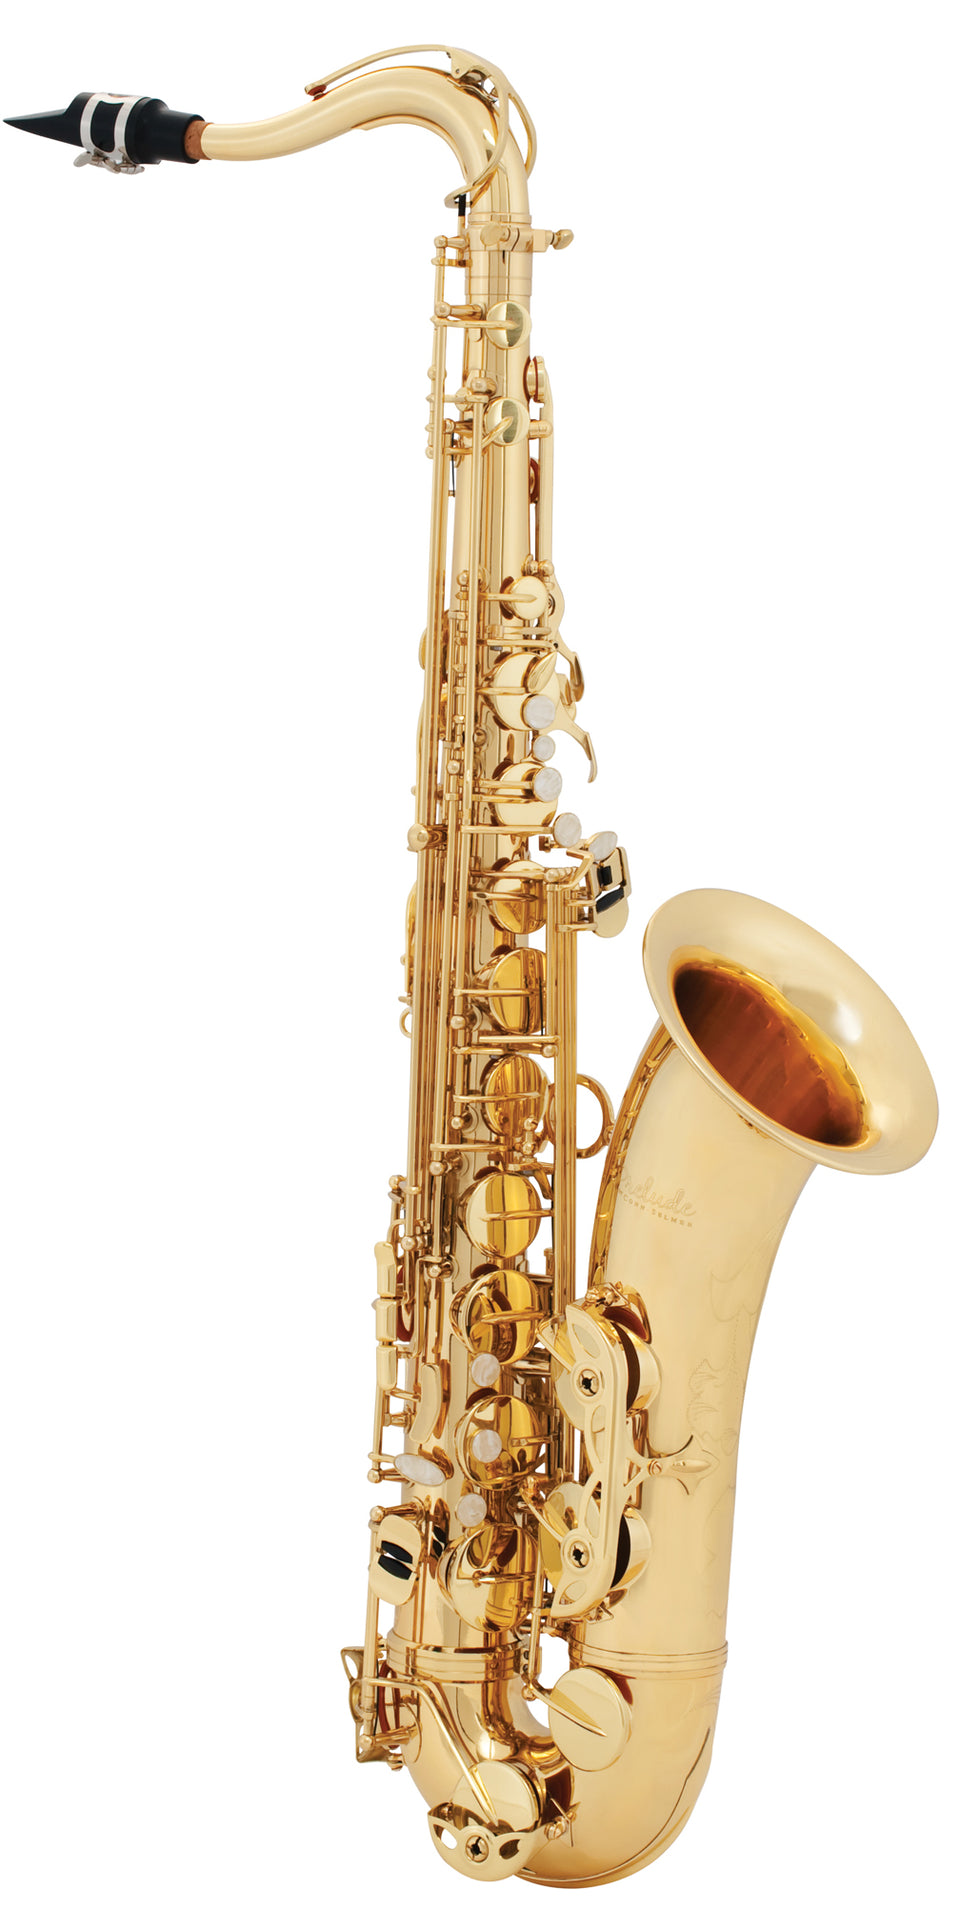 Prelude TS711 Student Tenor Saxophone Outfit